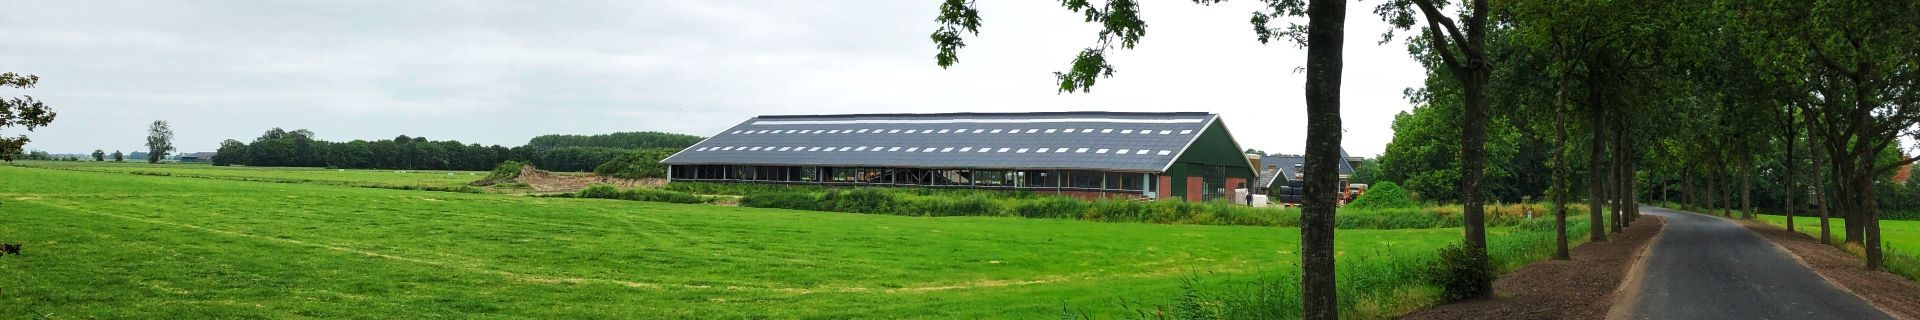 Organic management is a contributory factor in barn construction and dairy housing equipment for dairy farmer Douwe Maat.